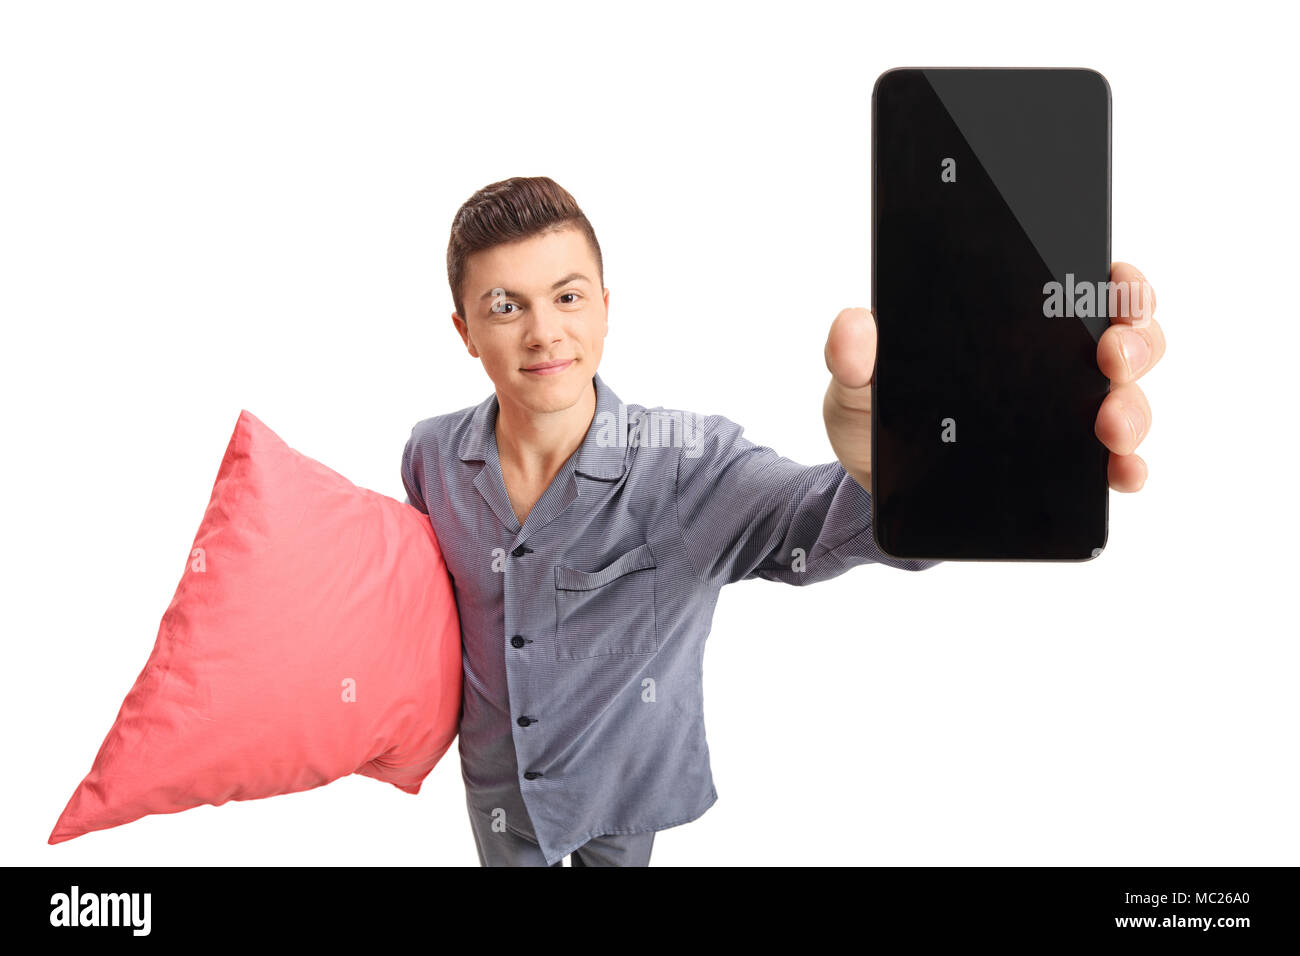 Teenage boy in pajamas holding a pillow and a phone isolated on white background - Stock Image